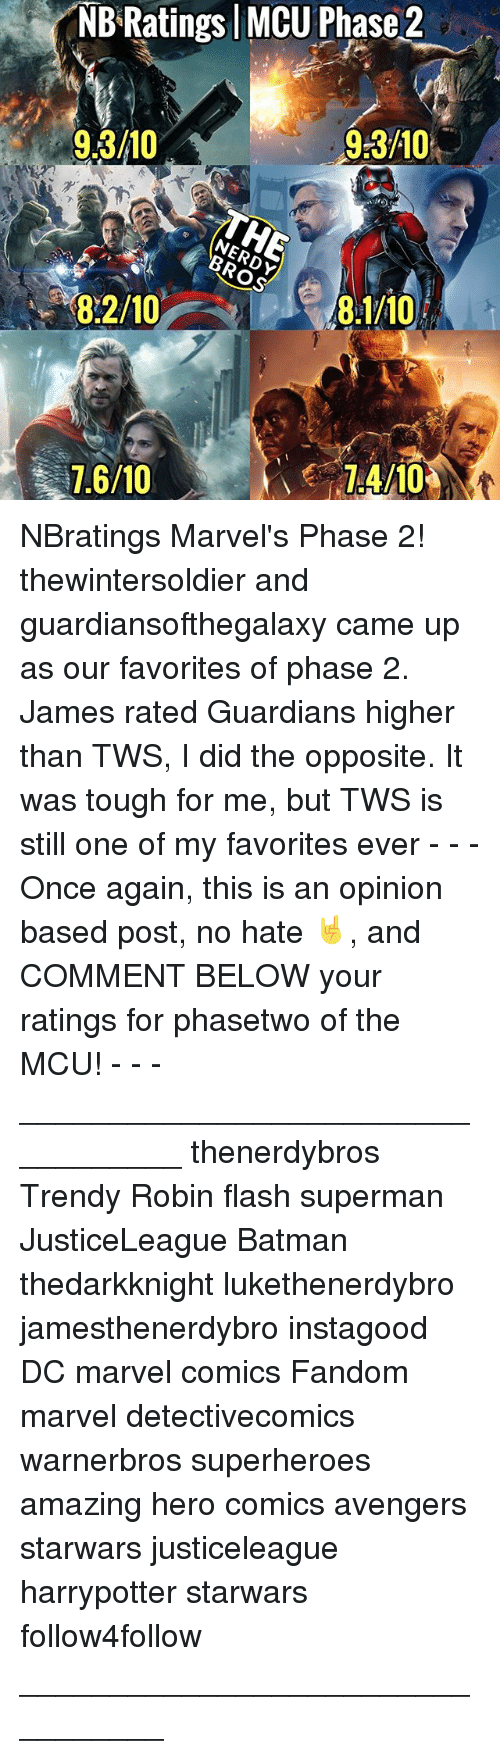 Batman, Marvel Comics, and Memes: NB Ratings MCU Phase 2  9.3/10  9:3/10  /W  8:2/10  7.6/10  7:4/10 NBratings Marvel's Phase 2! thewintersoldier and guardiansofthegalaxy came up as our favorites of phase 2. James rated Guardians higher than TWS, I did the opposite. It was tough for me, but TWS is still one of my favorites ever - - - Once again, this is an opinion based post, no hate 🤘, and COMMENT BELOW your ratings for phasetwo of the MCU! - - - __________________________________ thenerdybros Trendy Robin flash superman JusticeLeague Batman thedarkknight lukethenerdybro jamesthenerdybro instagood DC marvel comics Fandom marvel detectivecomics warnerbros superheroes amazing hero comics avengers starwars justiceleague harrypotter starwars follow4follow _________________________________